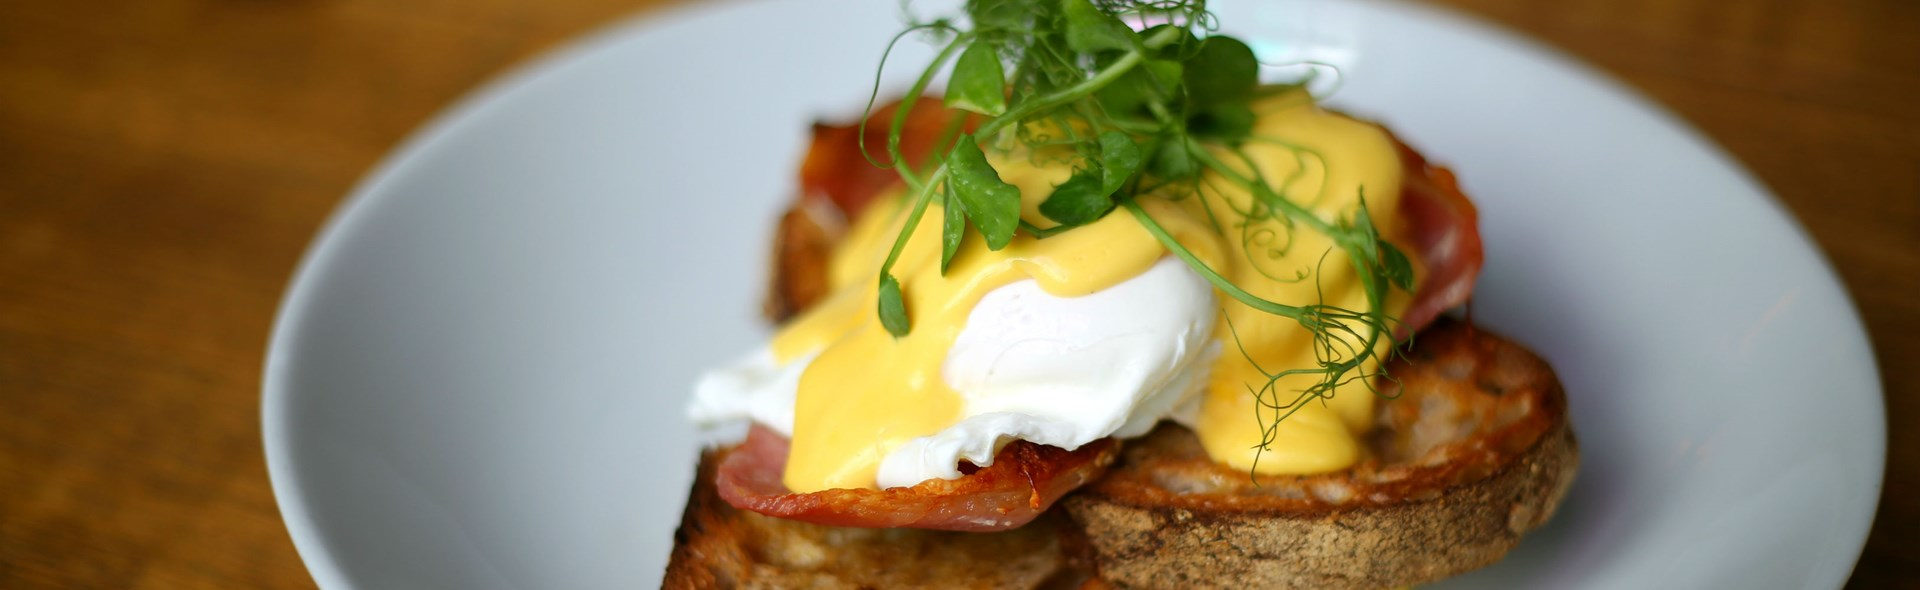 Breakfast & Brunch Menus